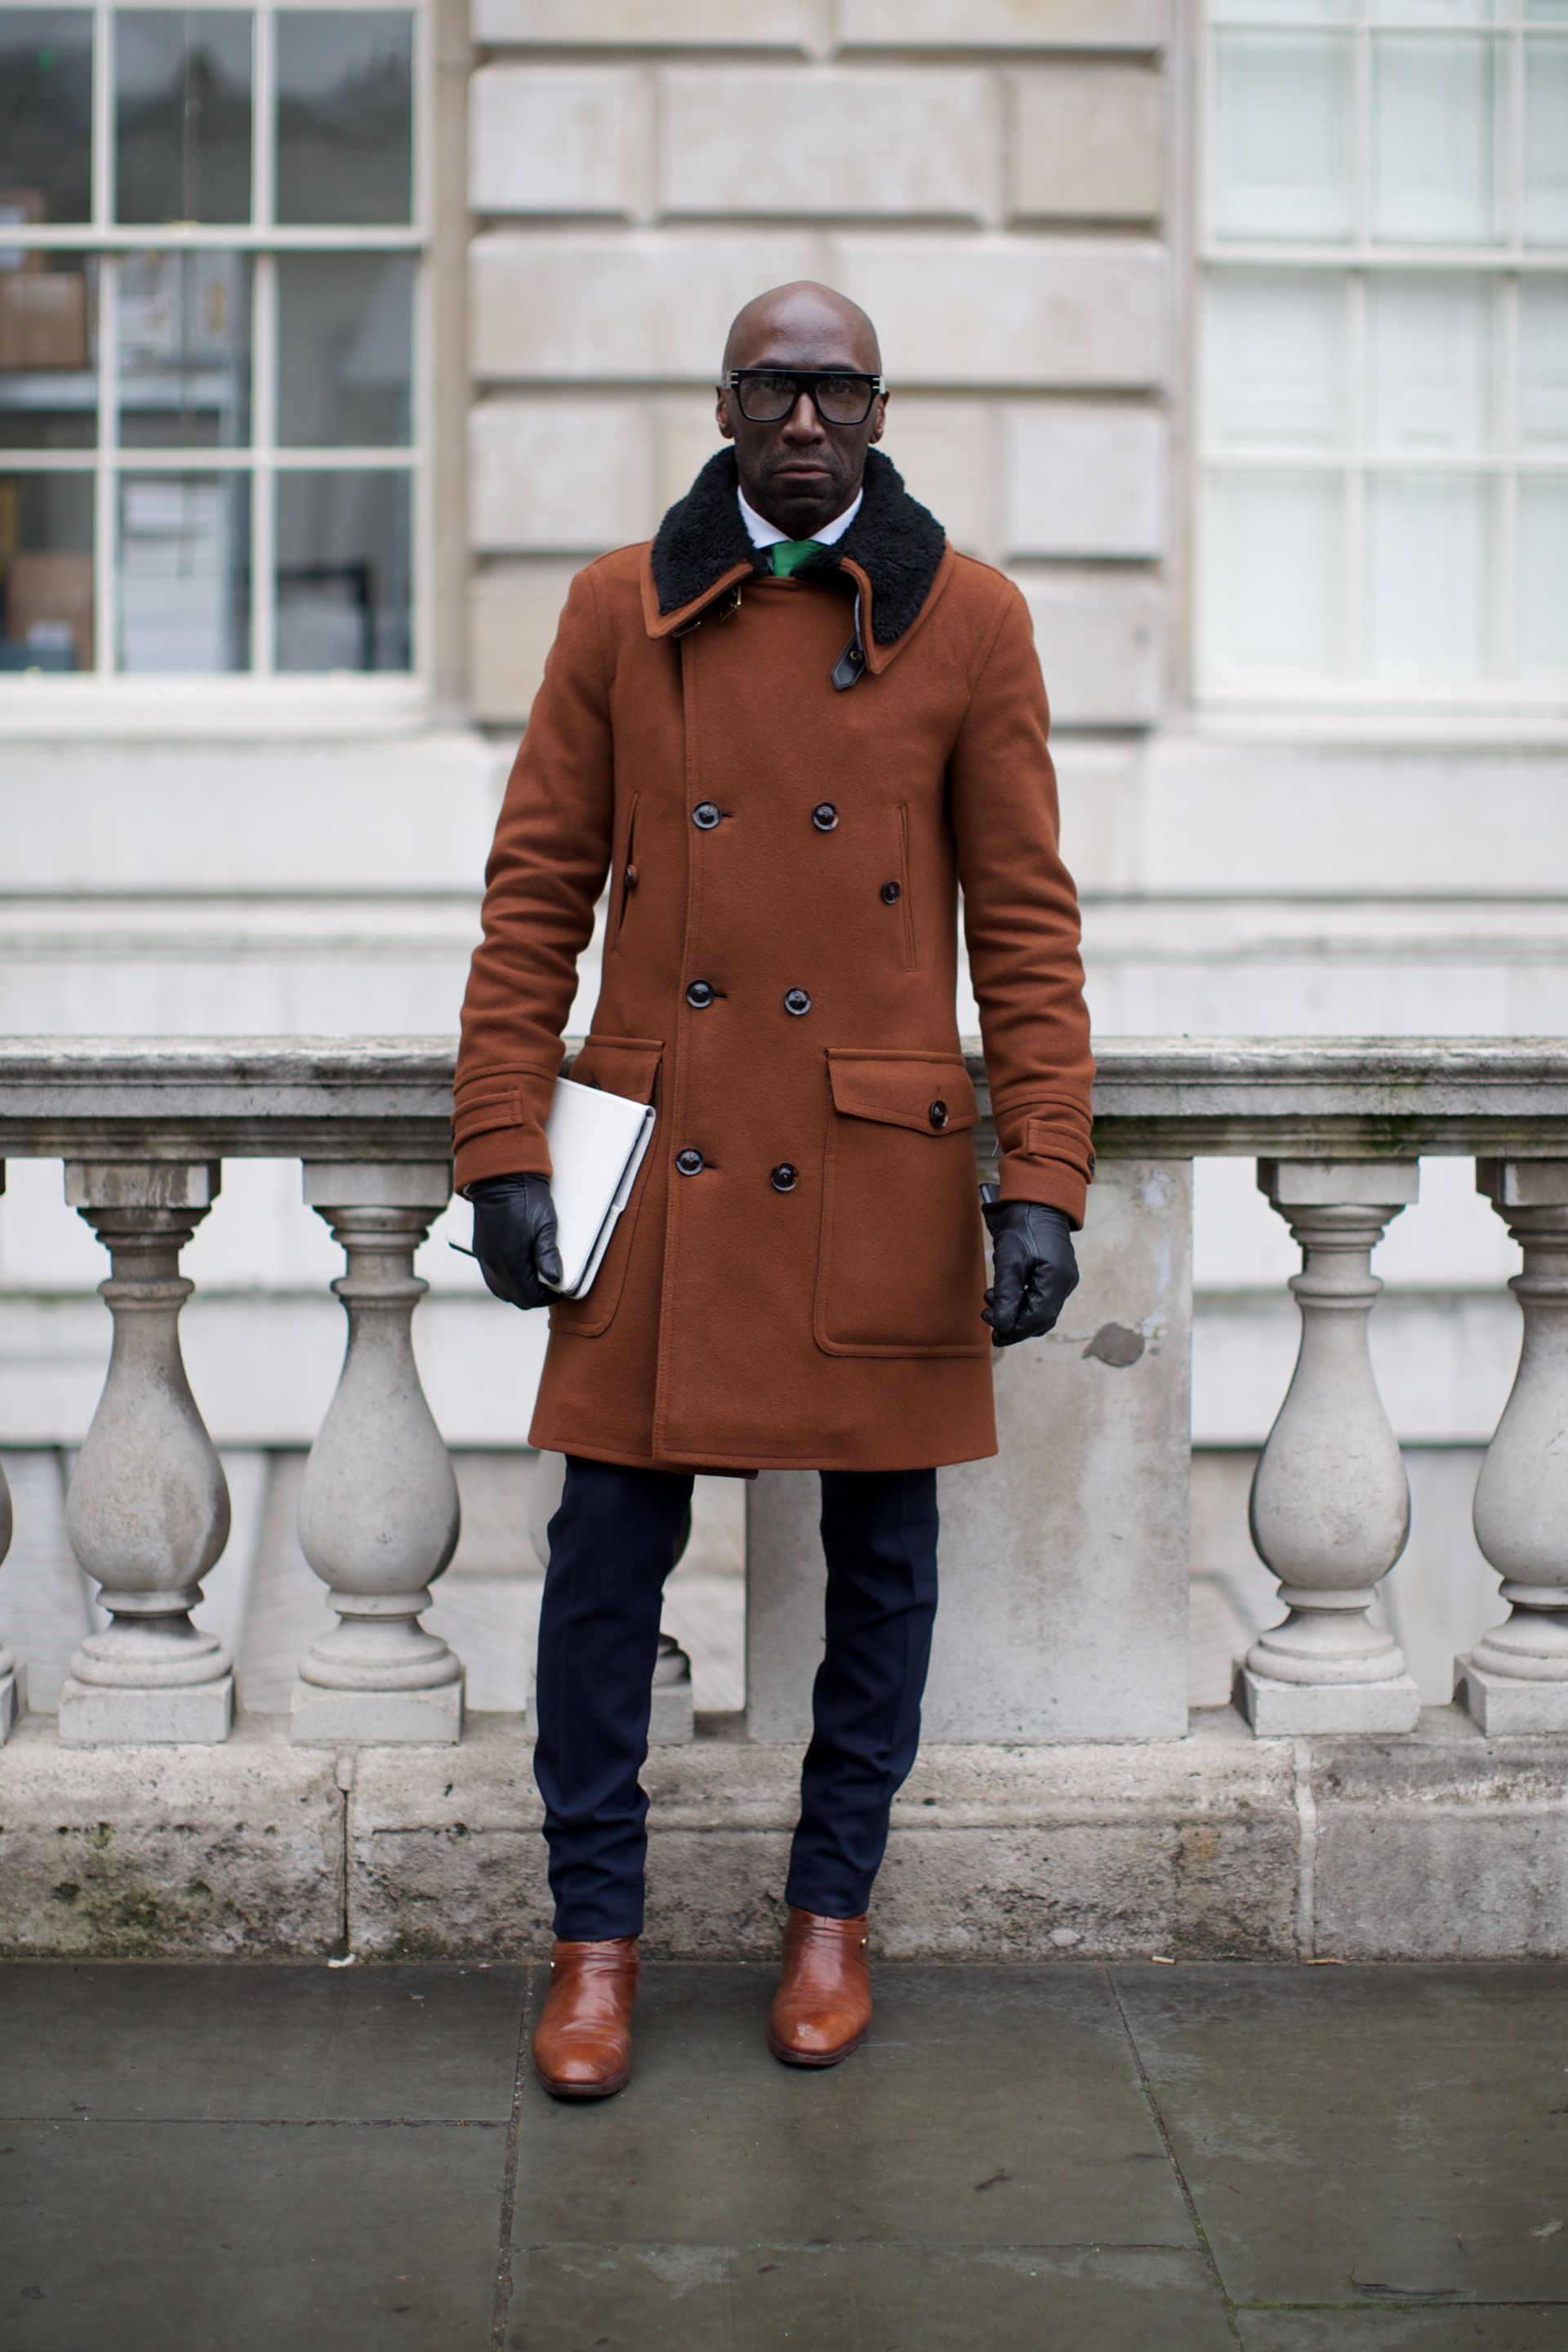 Street Style at London Fashion Week. Photographs by Marcus Dawes for LFW The Daily, (www.marcusdawes.com)